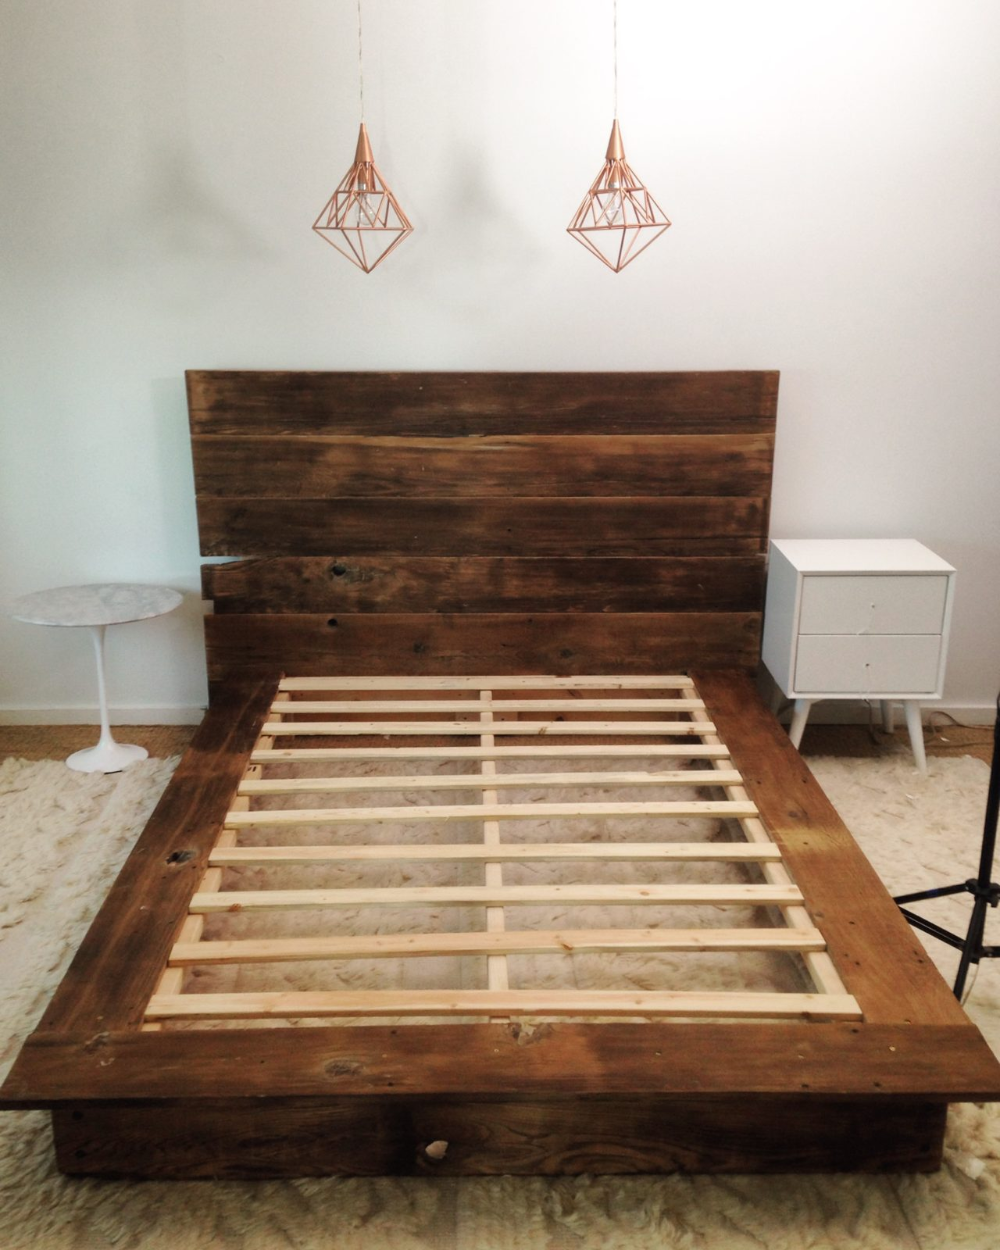 Mr. Kate - DIY Reclaimed Wood Platform Bed